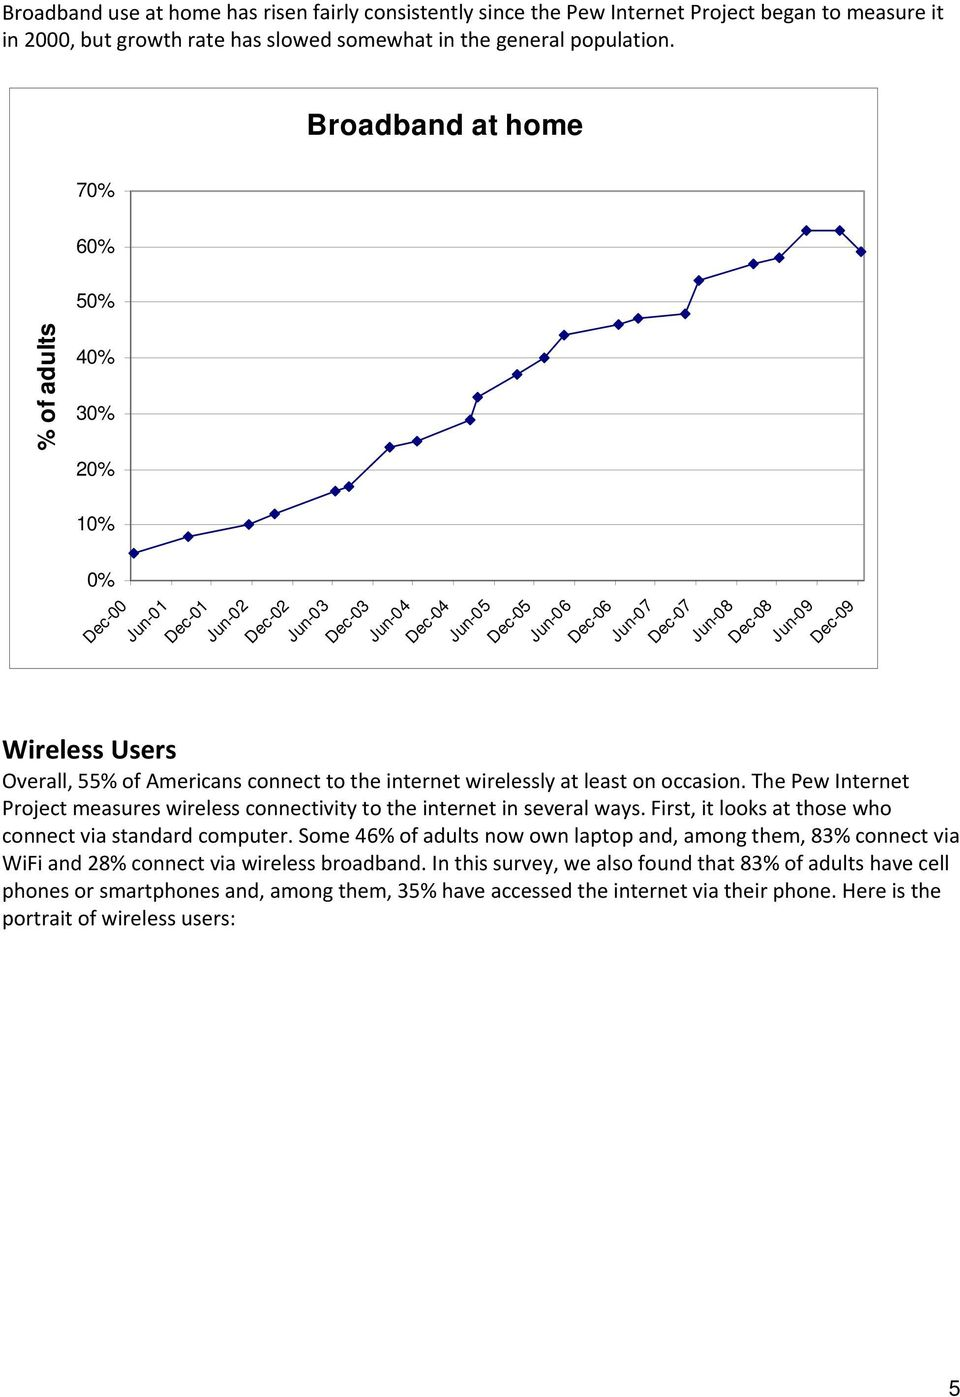 Wireless Users Overall, 55% of Americans connect to the internet wirelessly at least on occasion. The Pew Internet Project measures wireless connectivity to the internet in several ways.